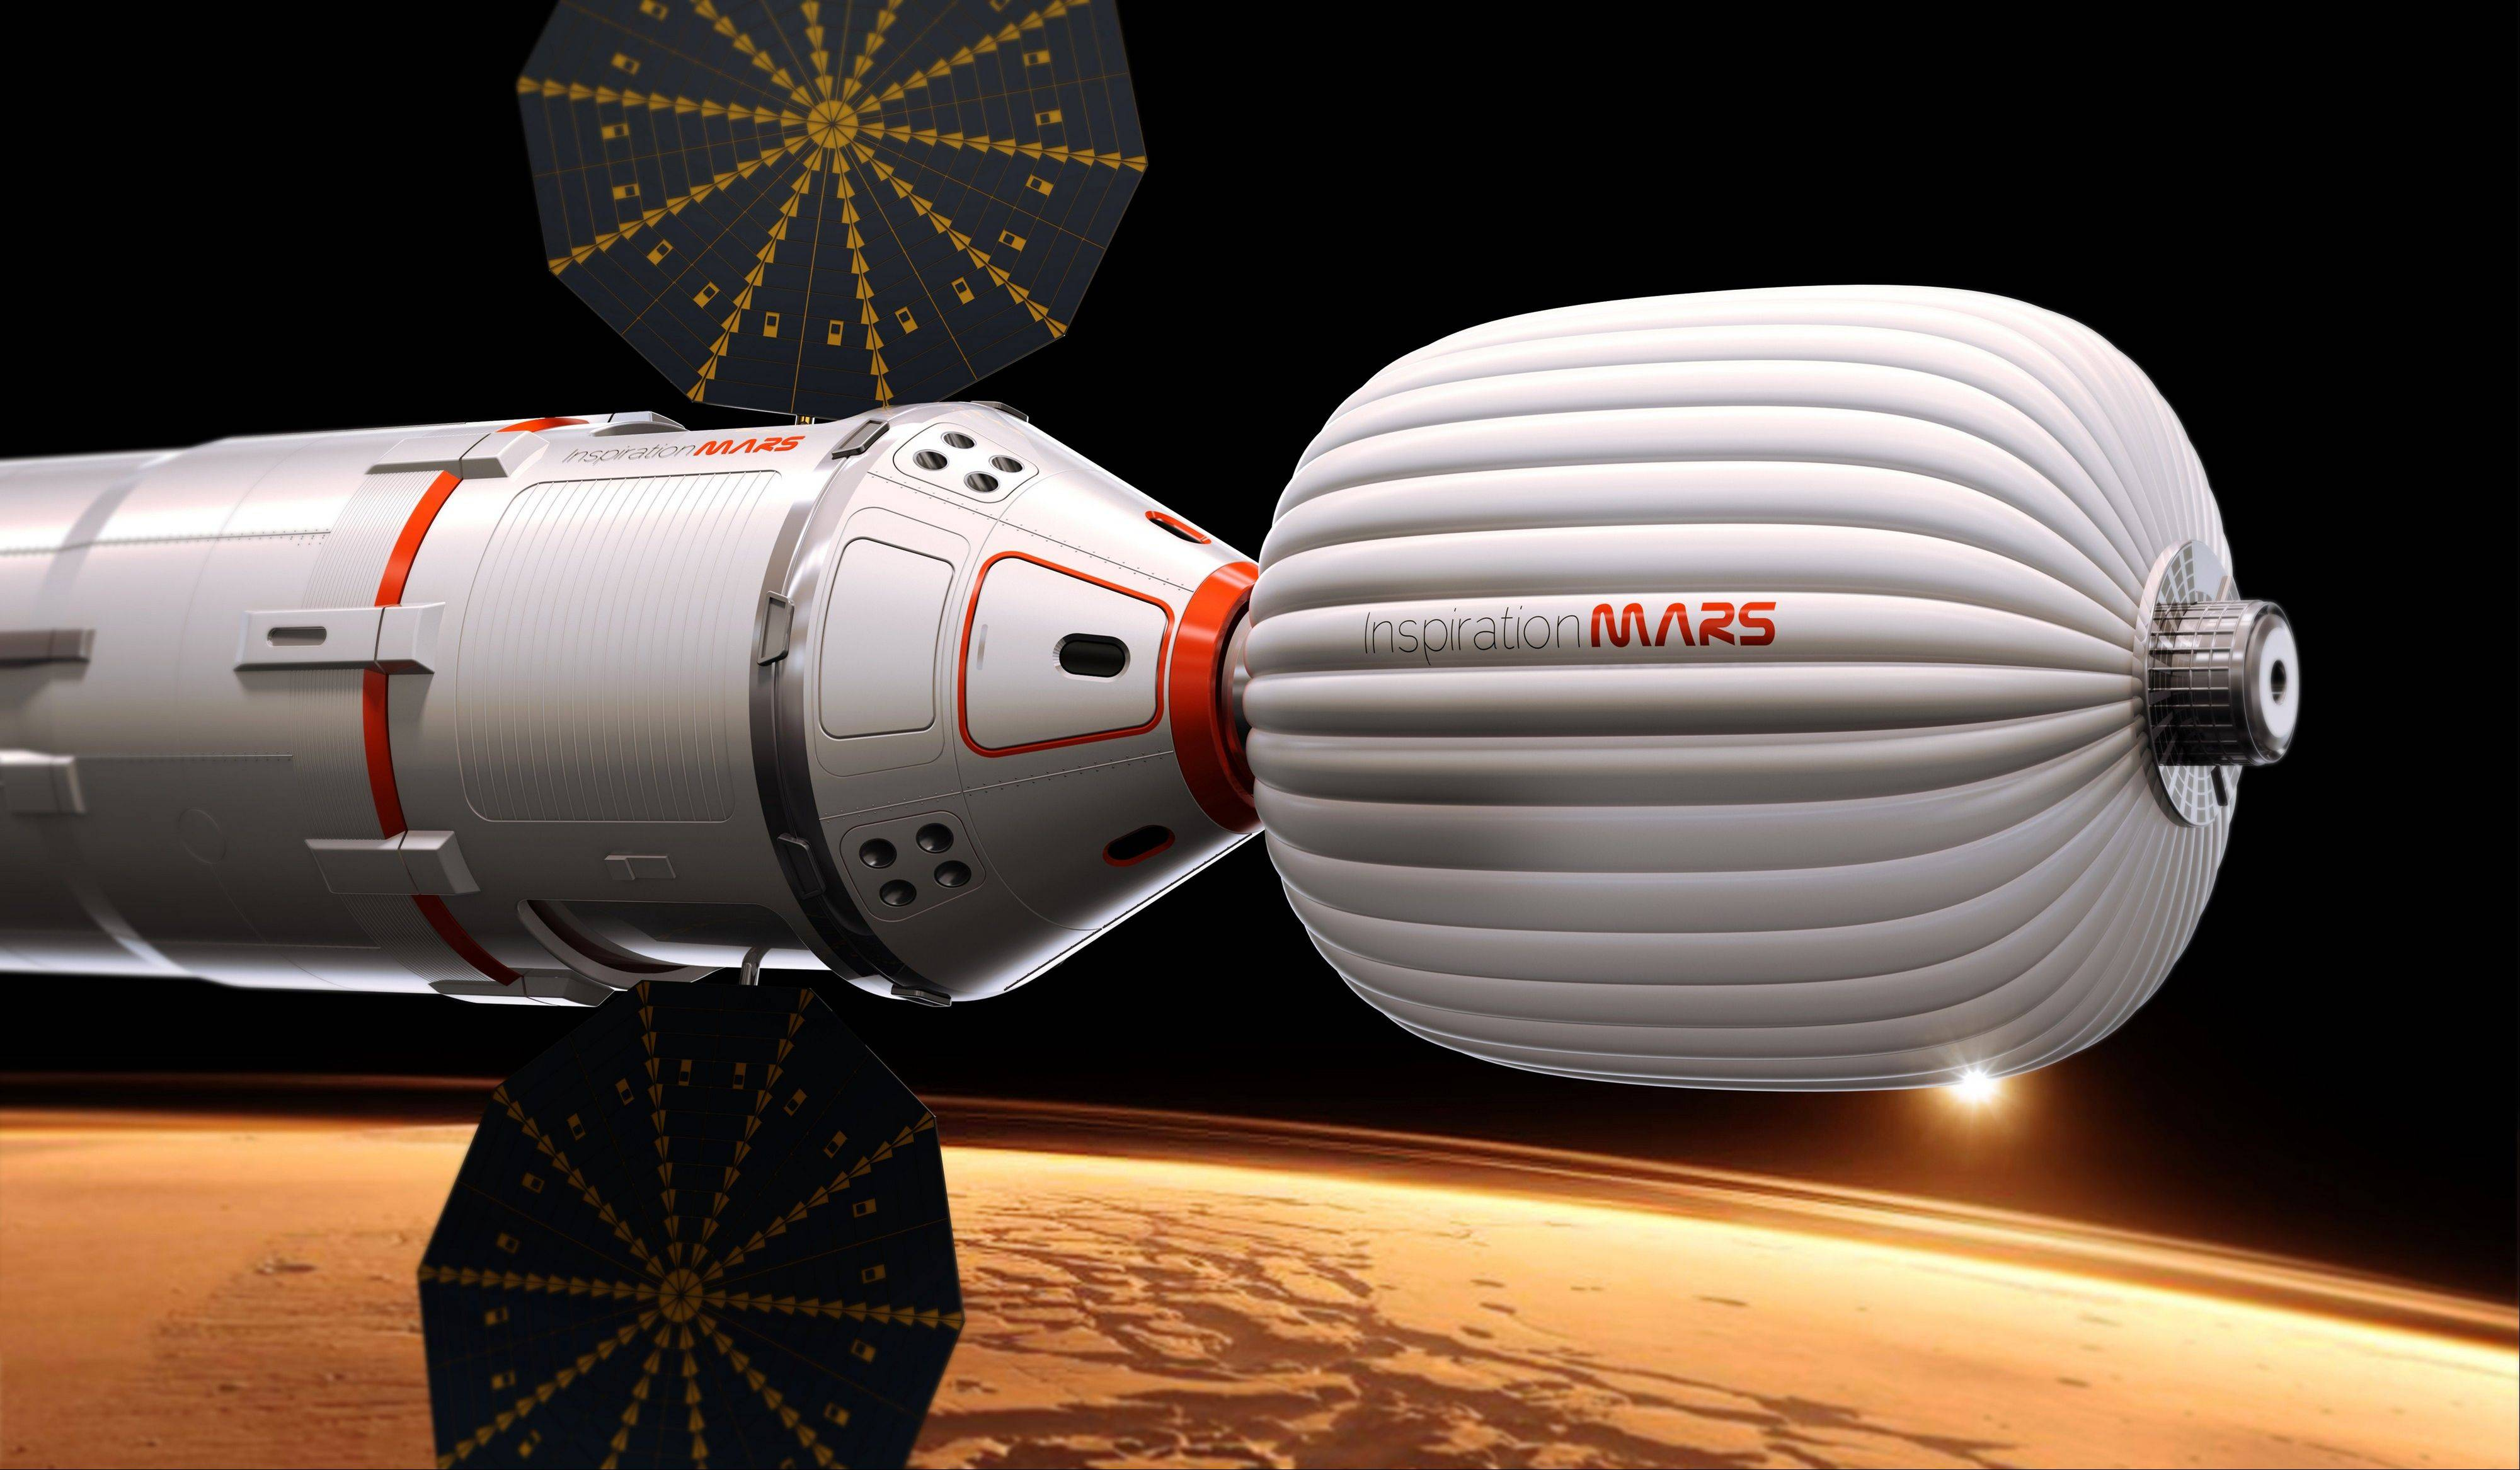 A drawing provided by Inspiration Mars shows an artist�s conception of a spacecraft envisioned by the private group, which wants to send a married couple on a mission to fly close to the red planet and zip back home, beginning in 2018.